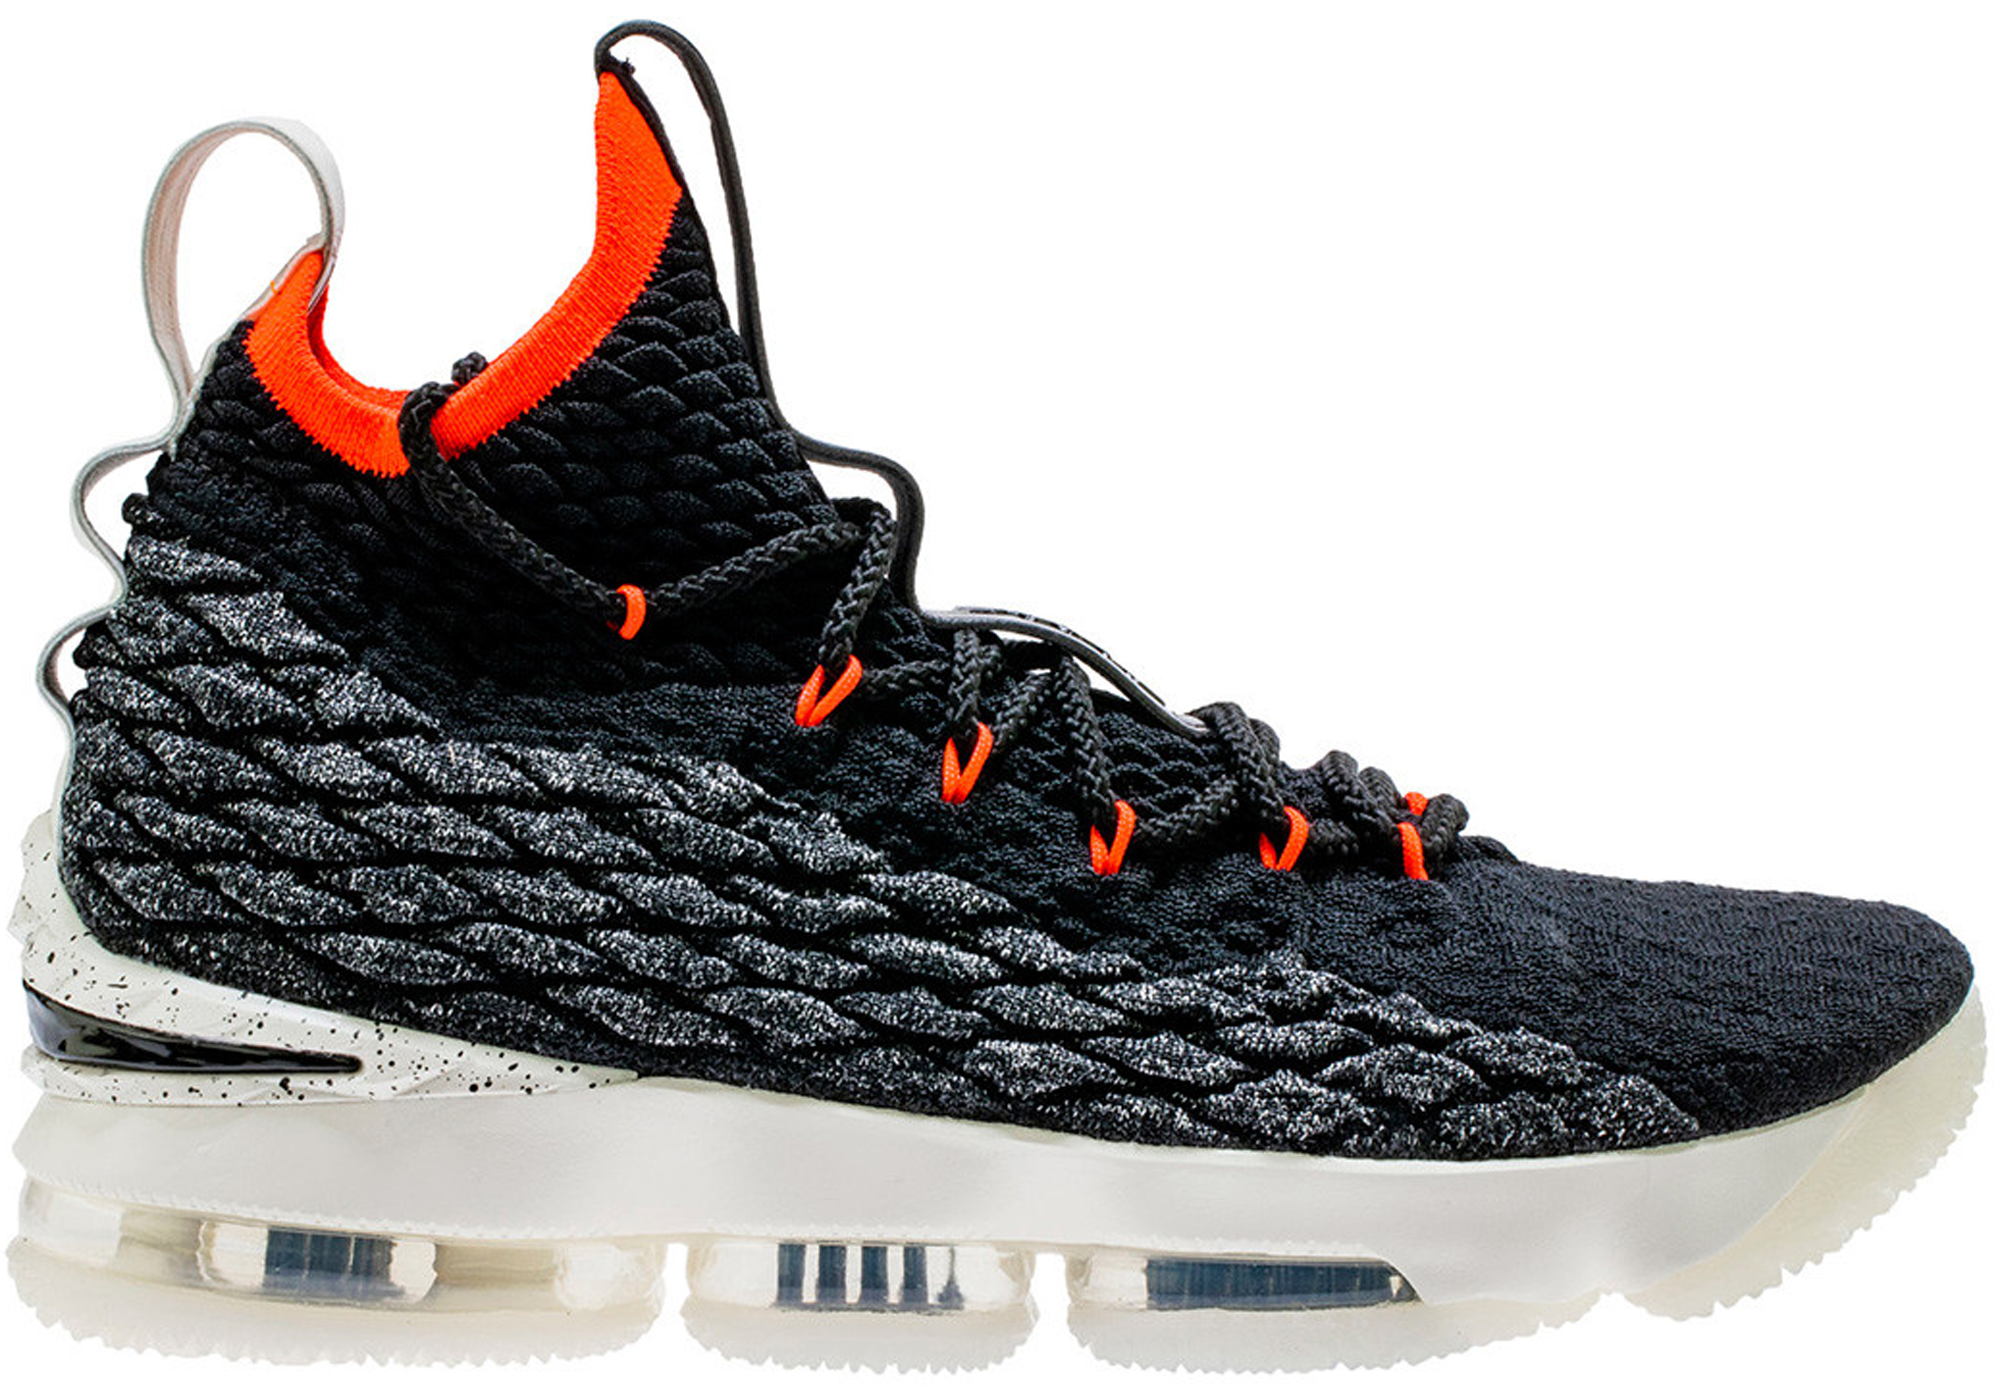 LeBron 15 Black Bright Crimson